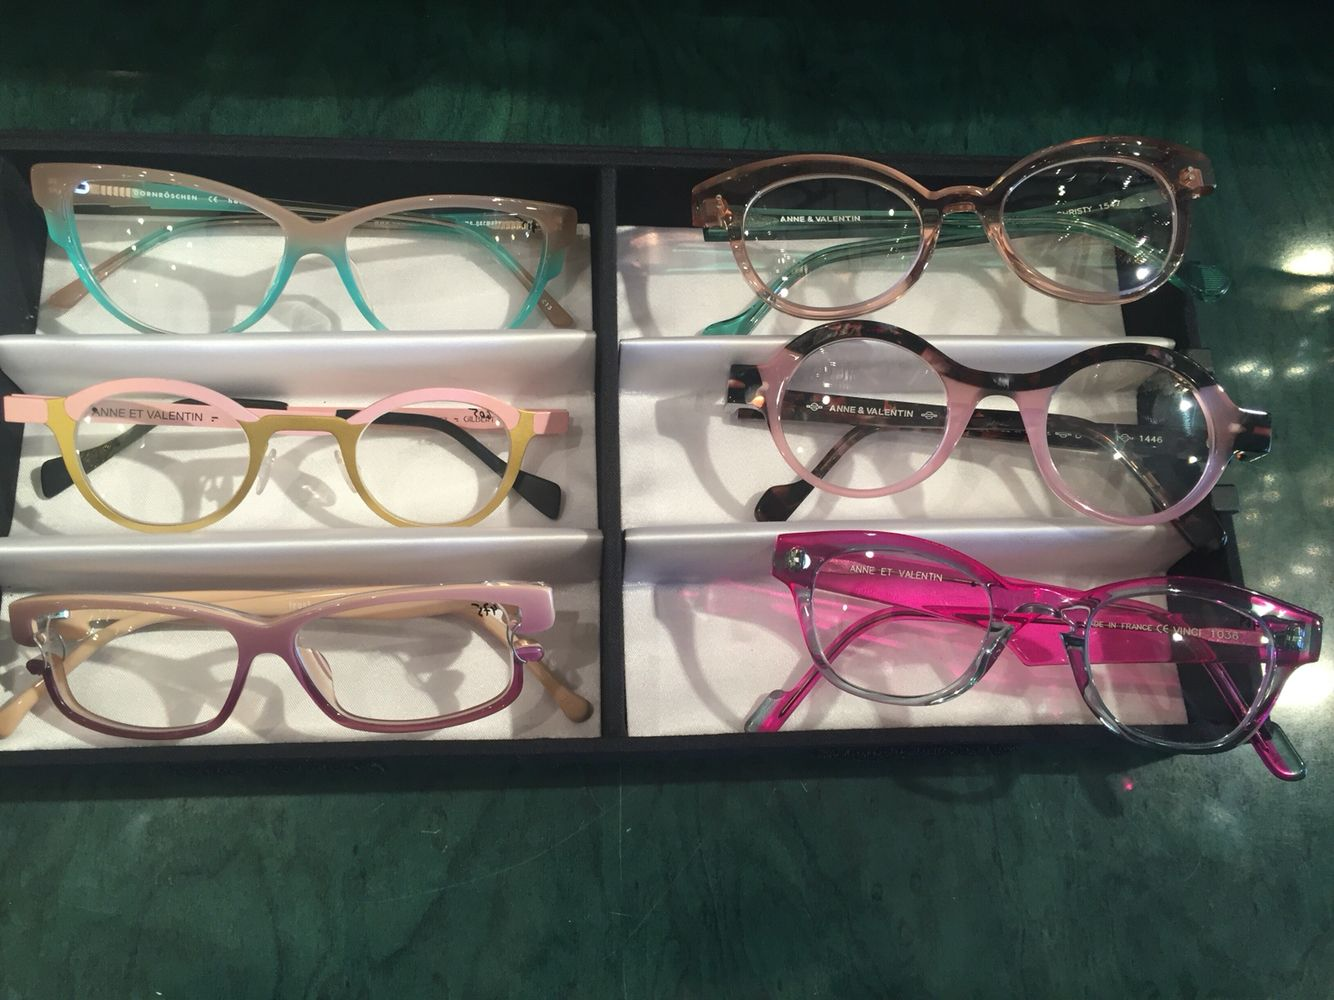 b8bcbe3973 Eye Glasses · Eyeglasses · We are Crazy about pink!  Anne Et Valentine   Frost  NEW collection